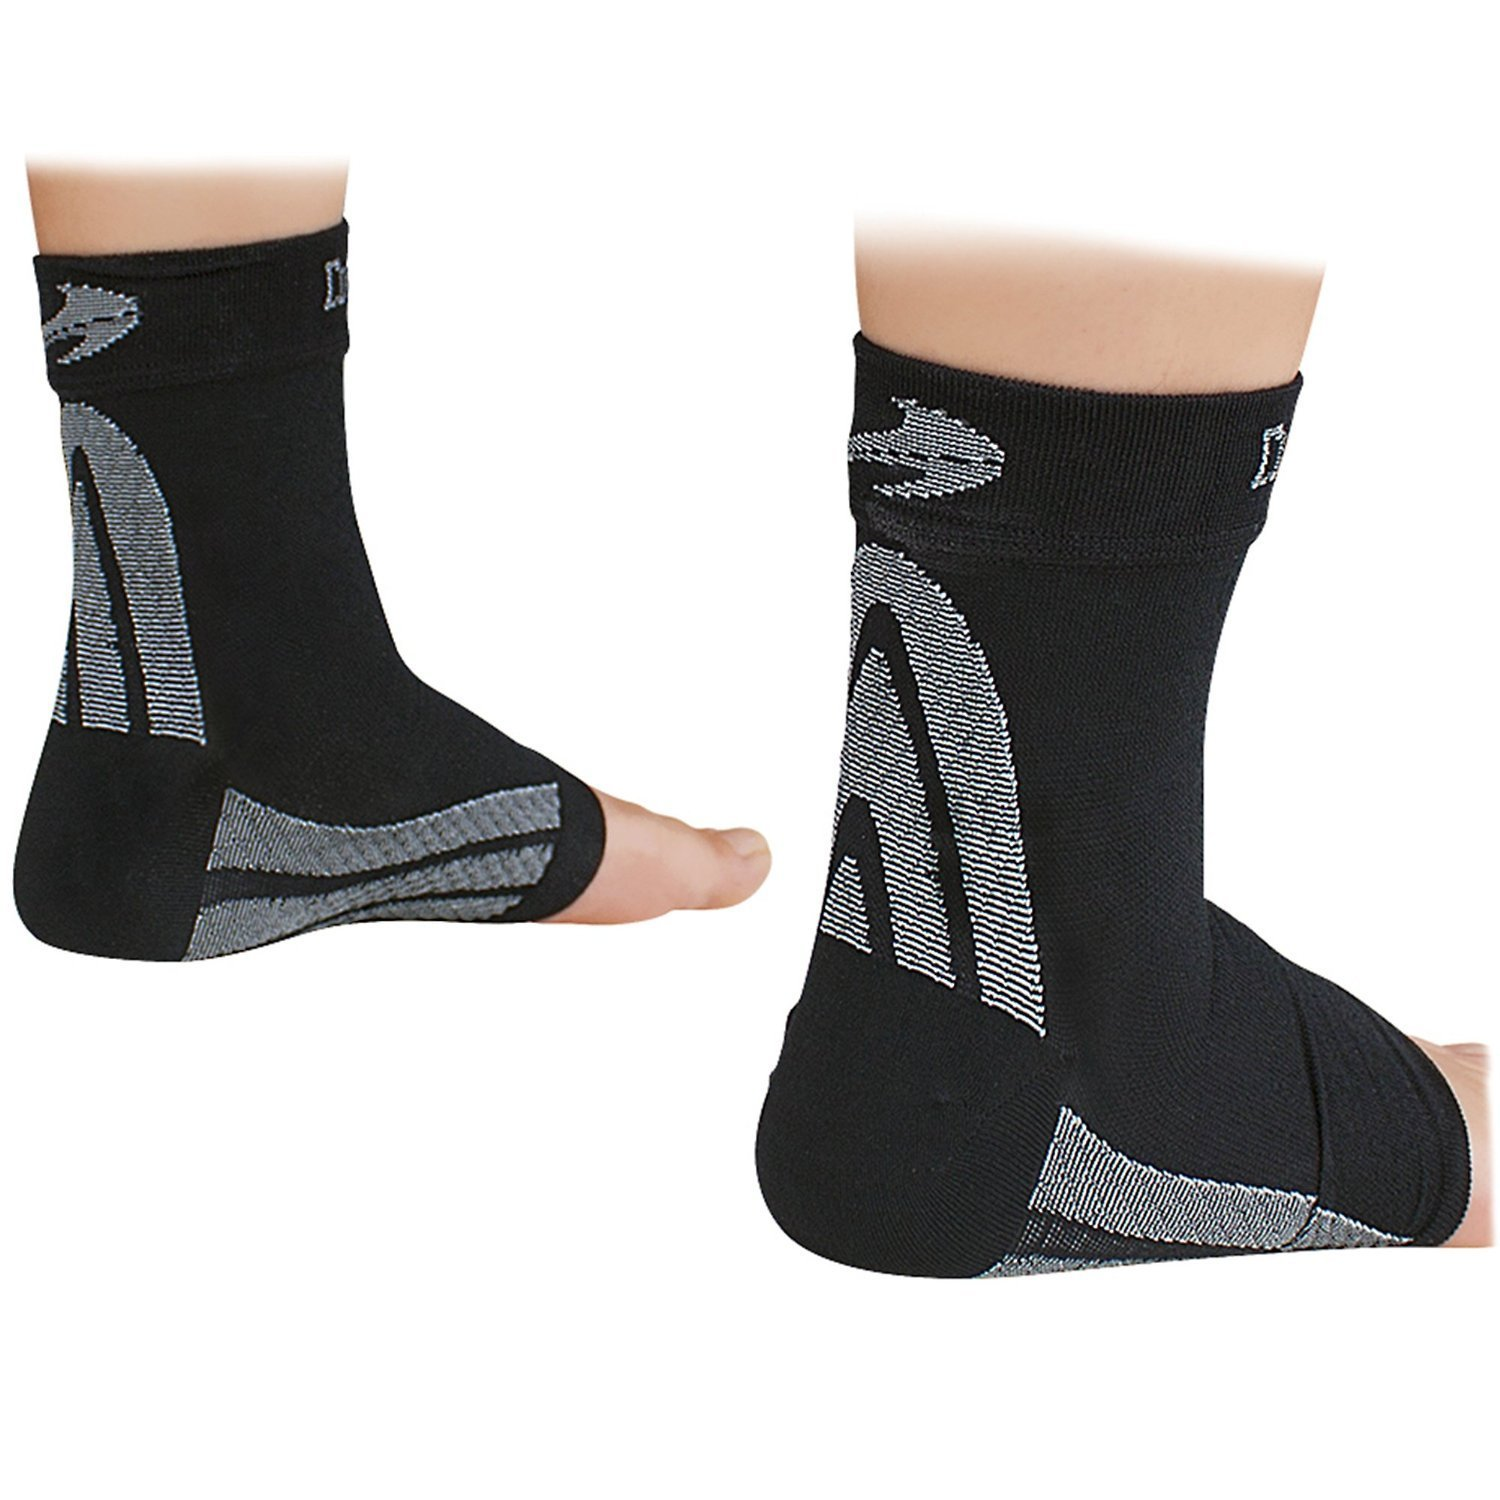 Foot Sleeves (1 Pair) Best Plantar